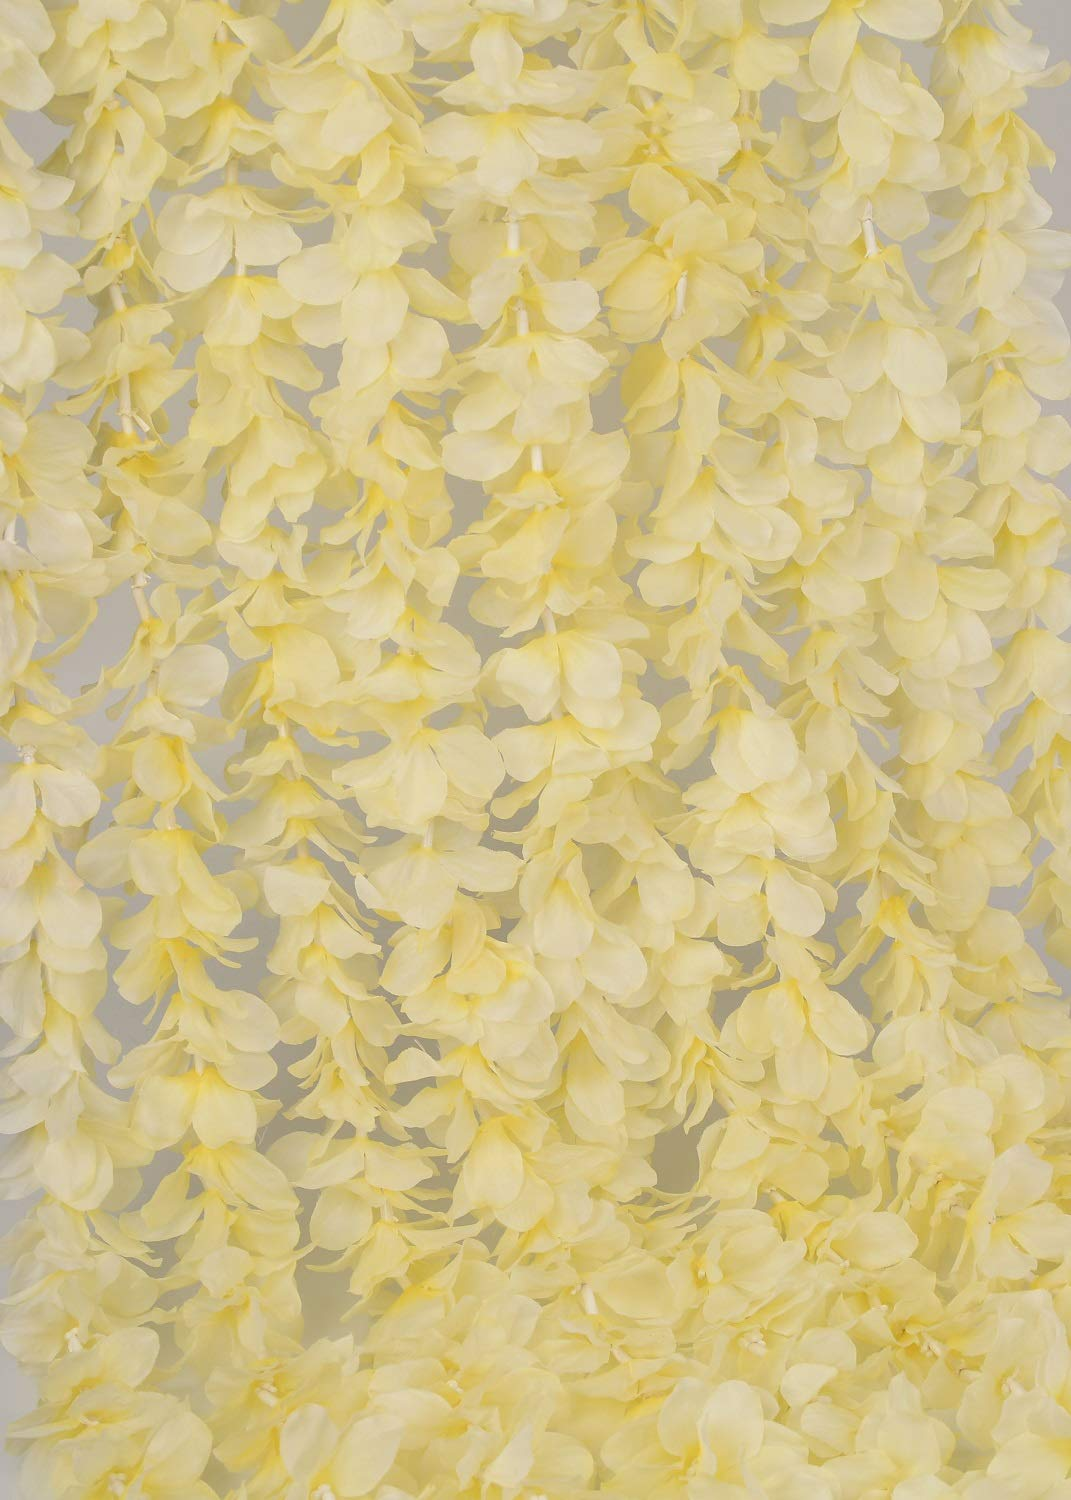 LUSHIDI-328Ft-Artificial-Silk-Wisteria-Vine-Hanging-Flowers-Garland-Home-Outdoor-Wedding-Arch-Garden-Wall-DecorPack-of-10